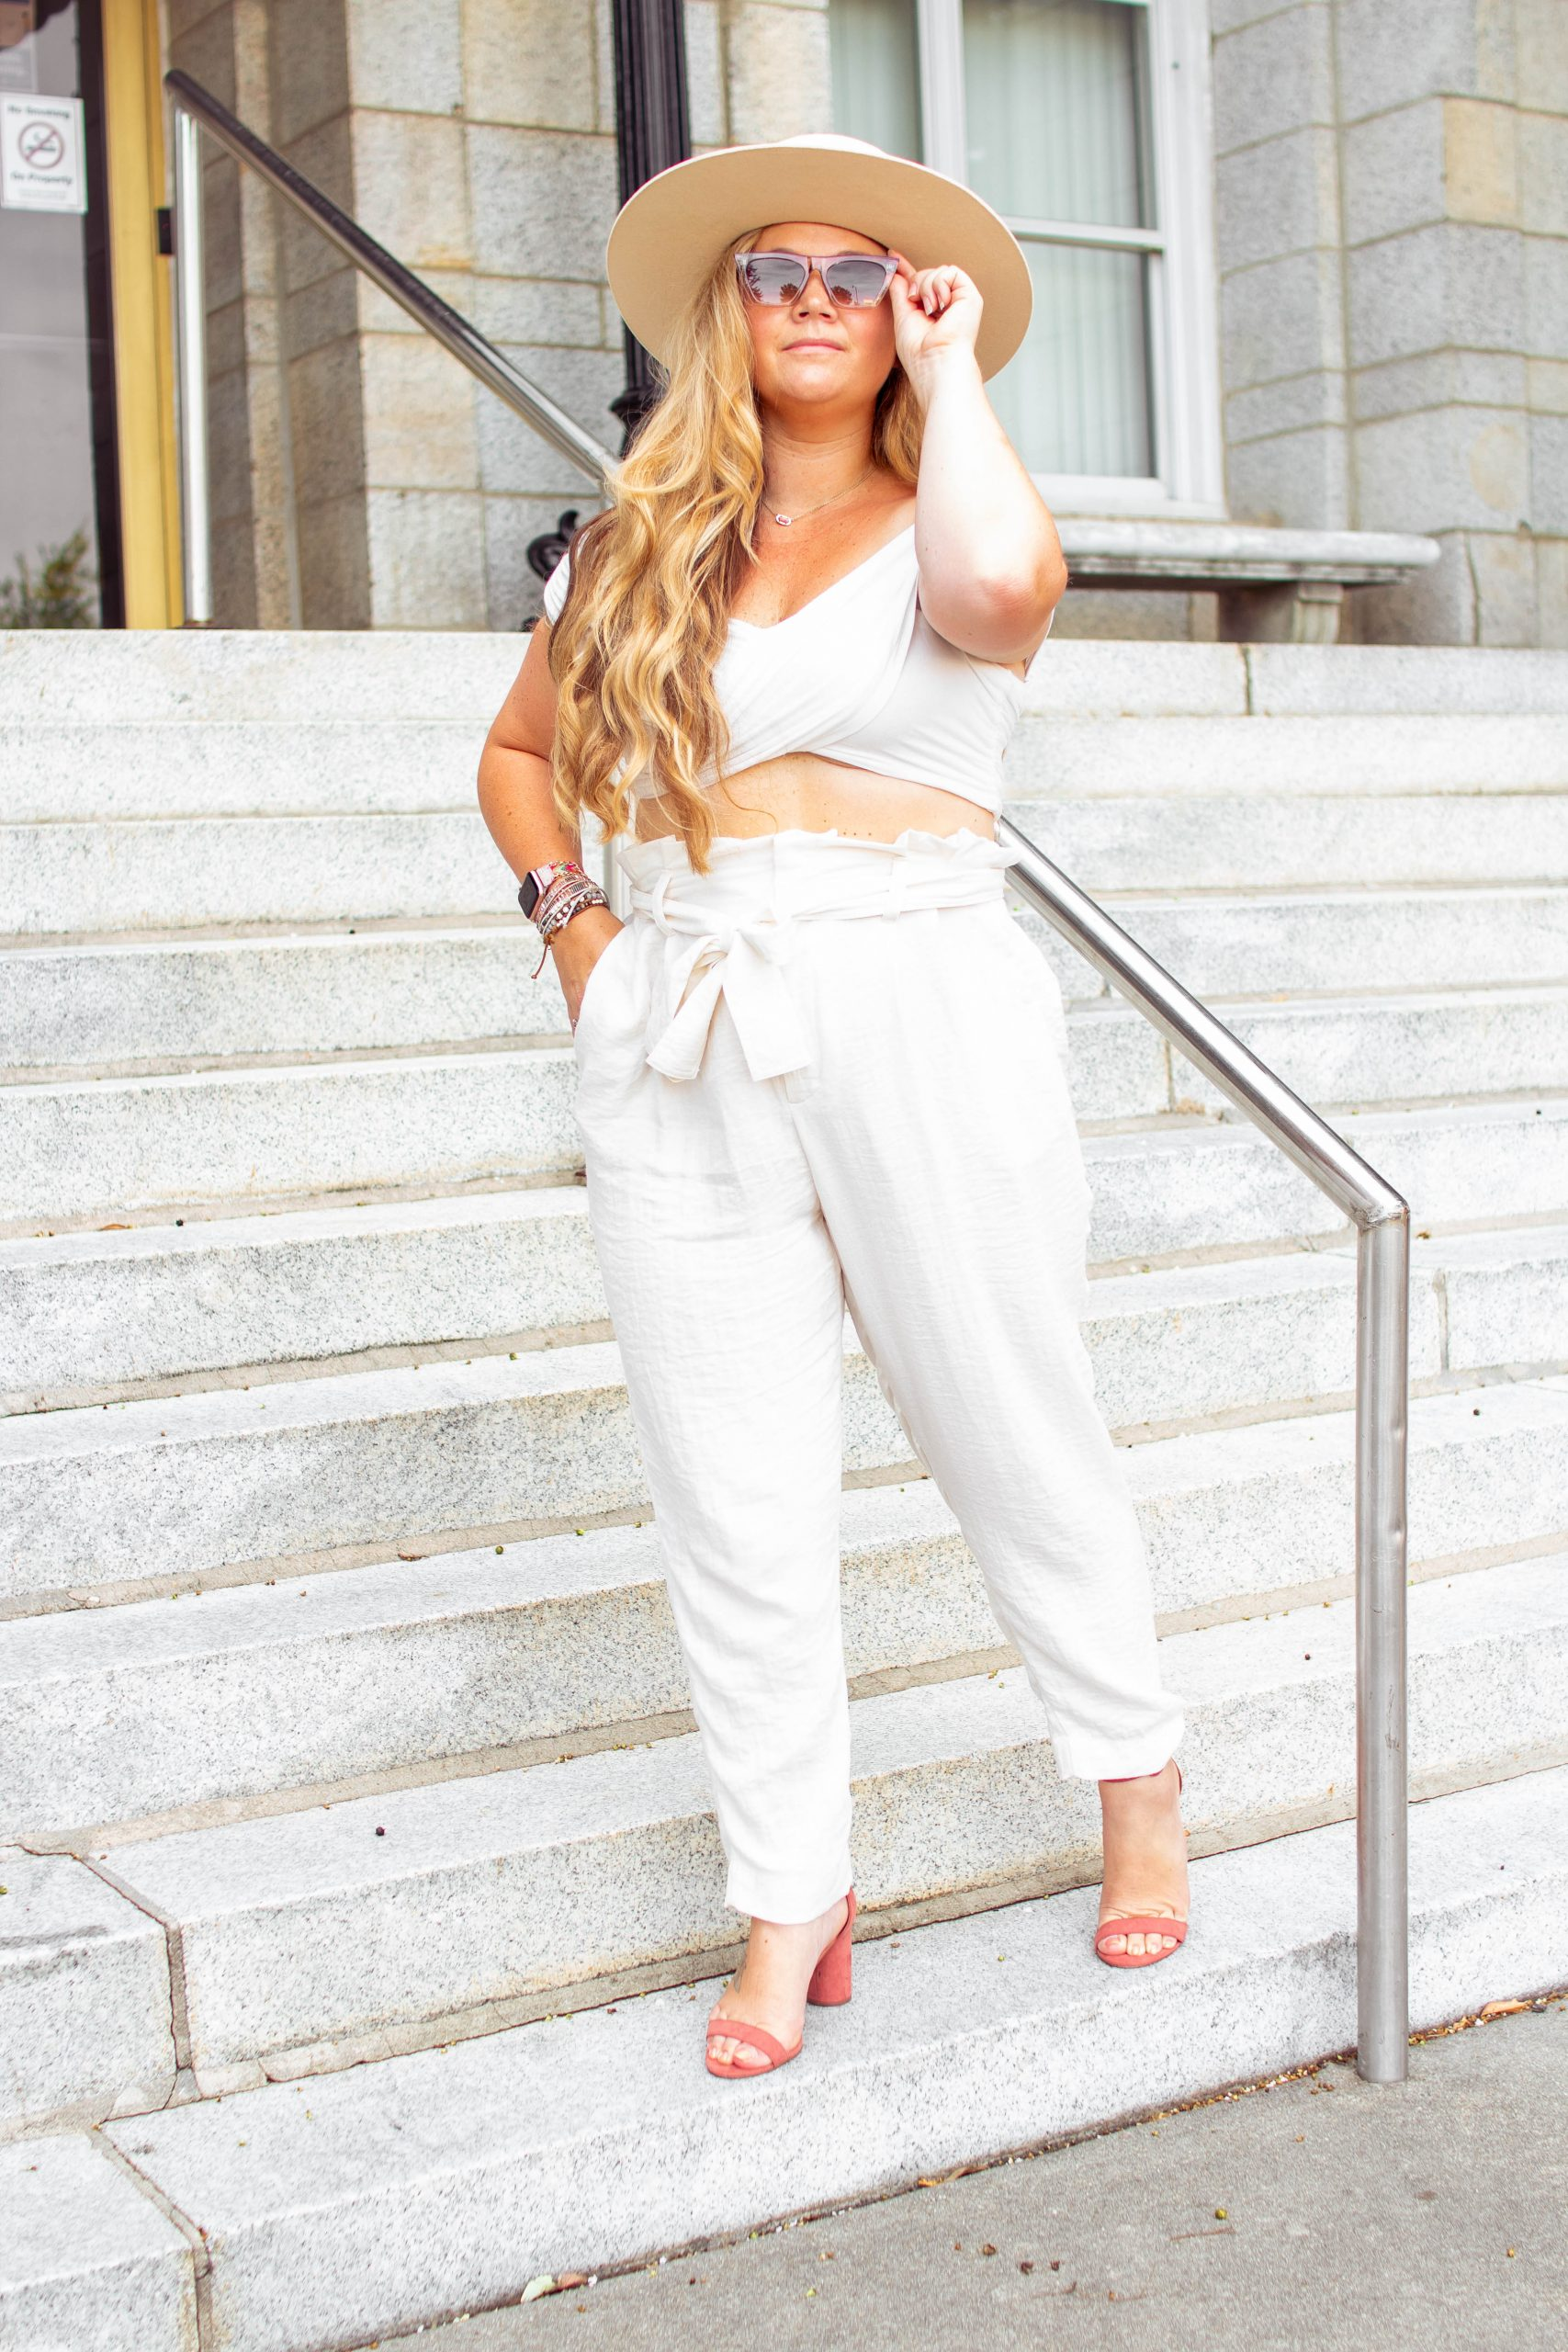 Nicki odom The Boho Diaries in White Linen Pants and White Crop top for White Party